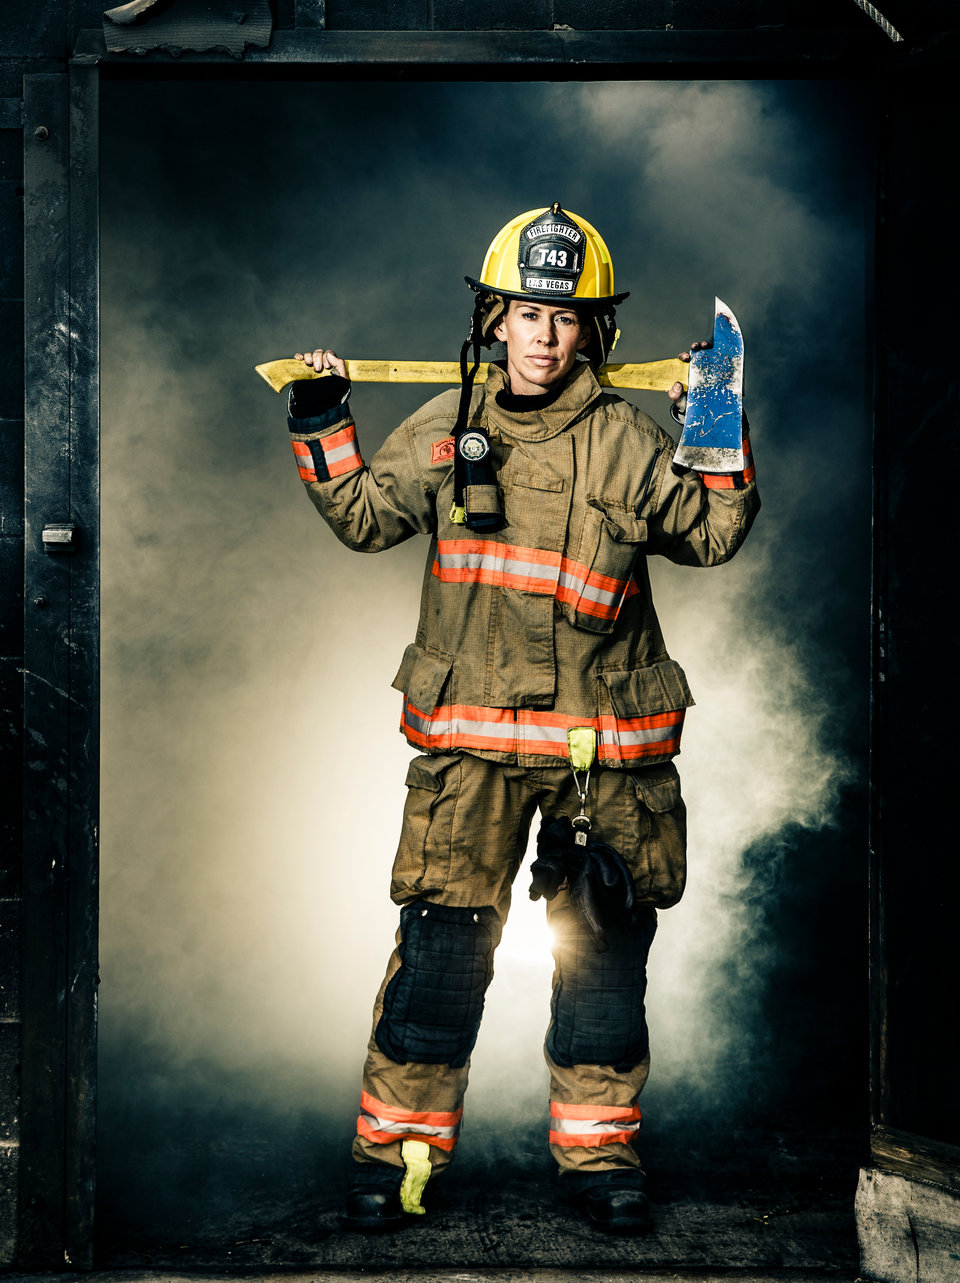 This firefighter chick is slide down my pole 4